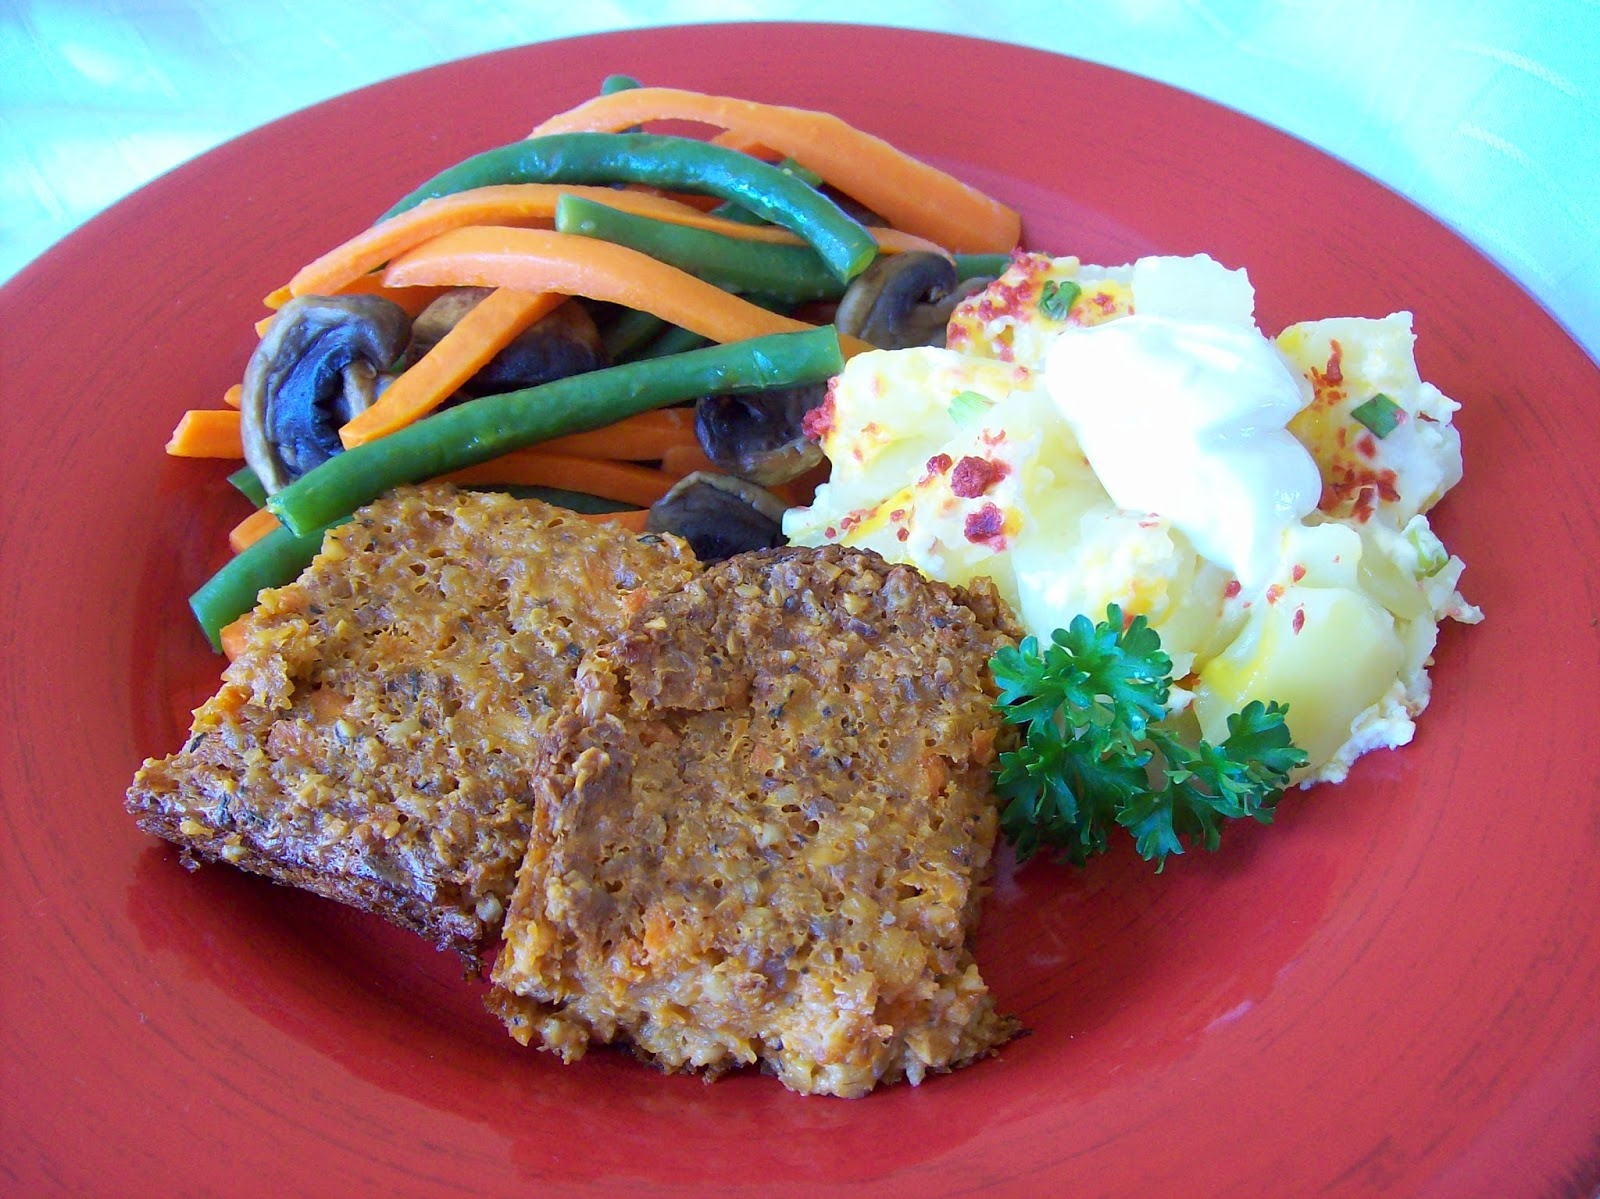 Meatless Loaf served with potatoes and vegetables.